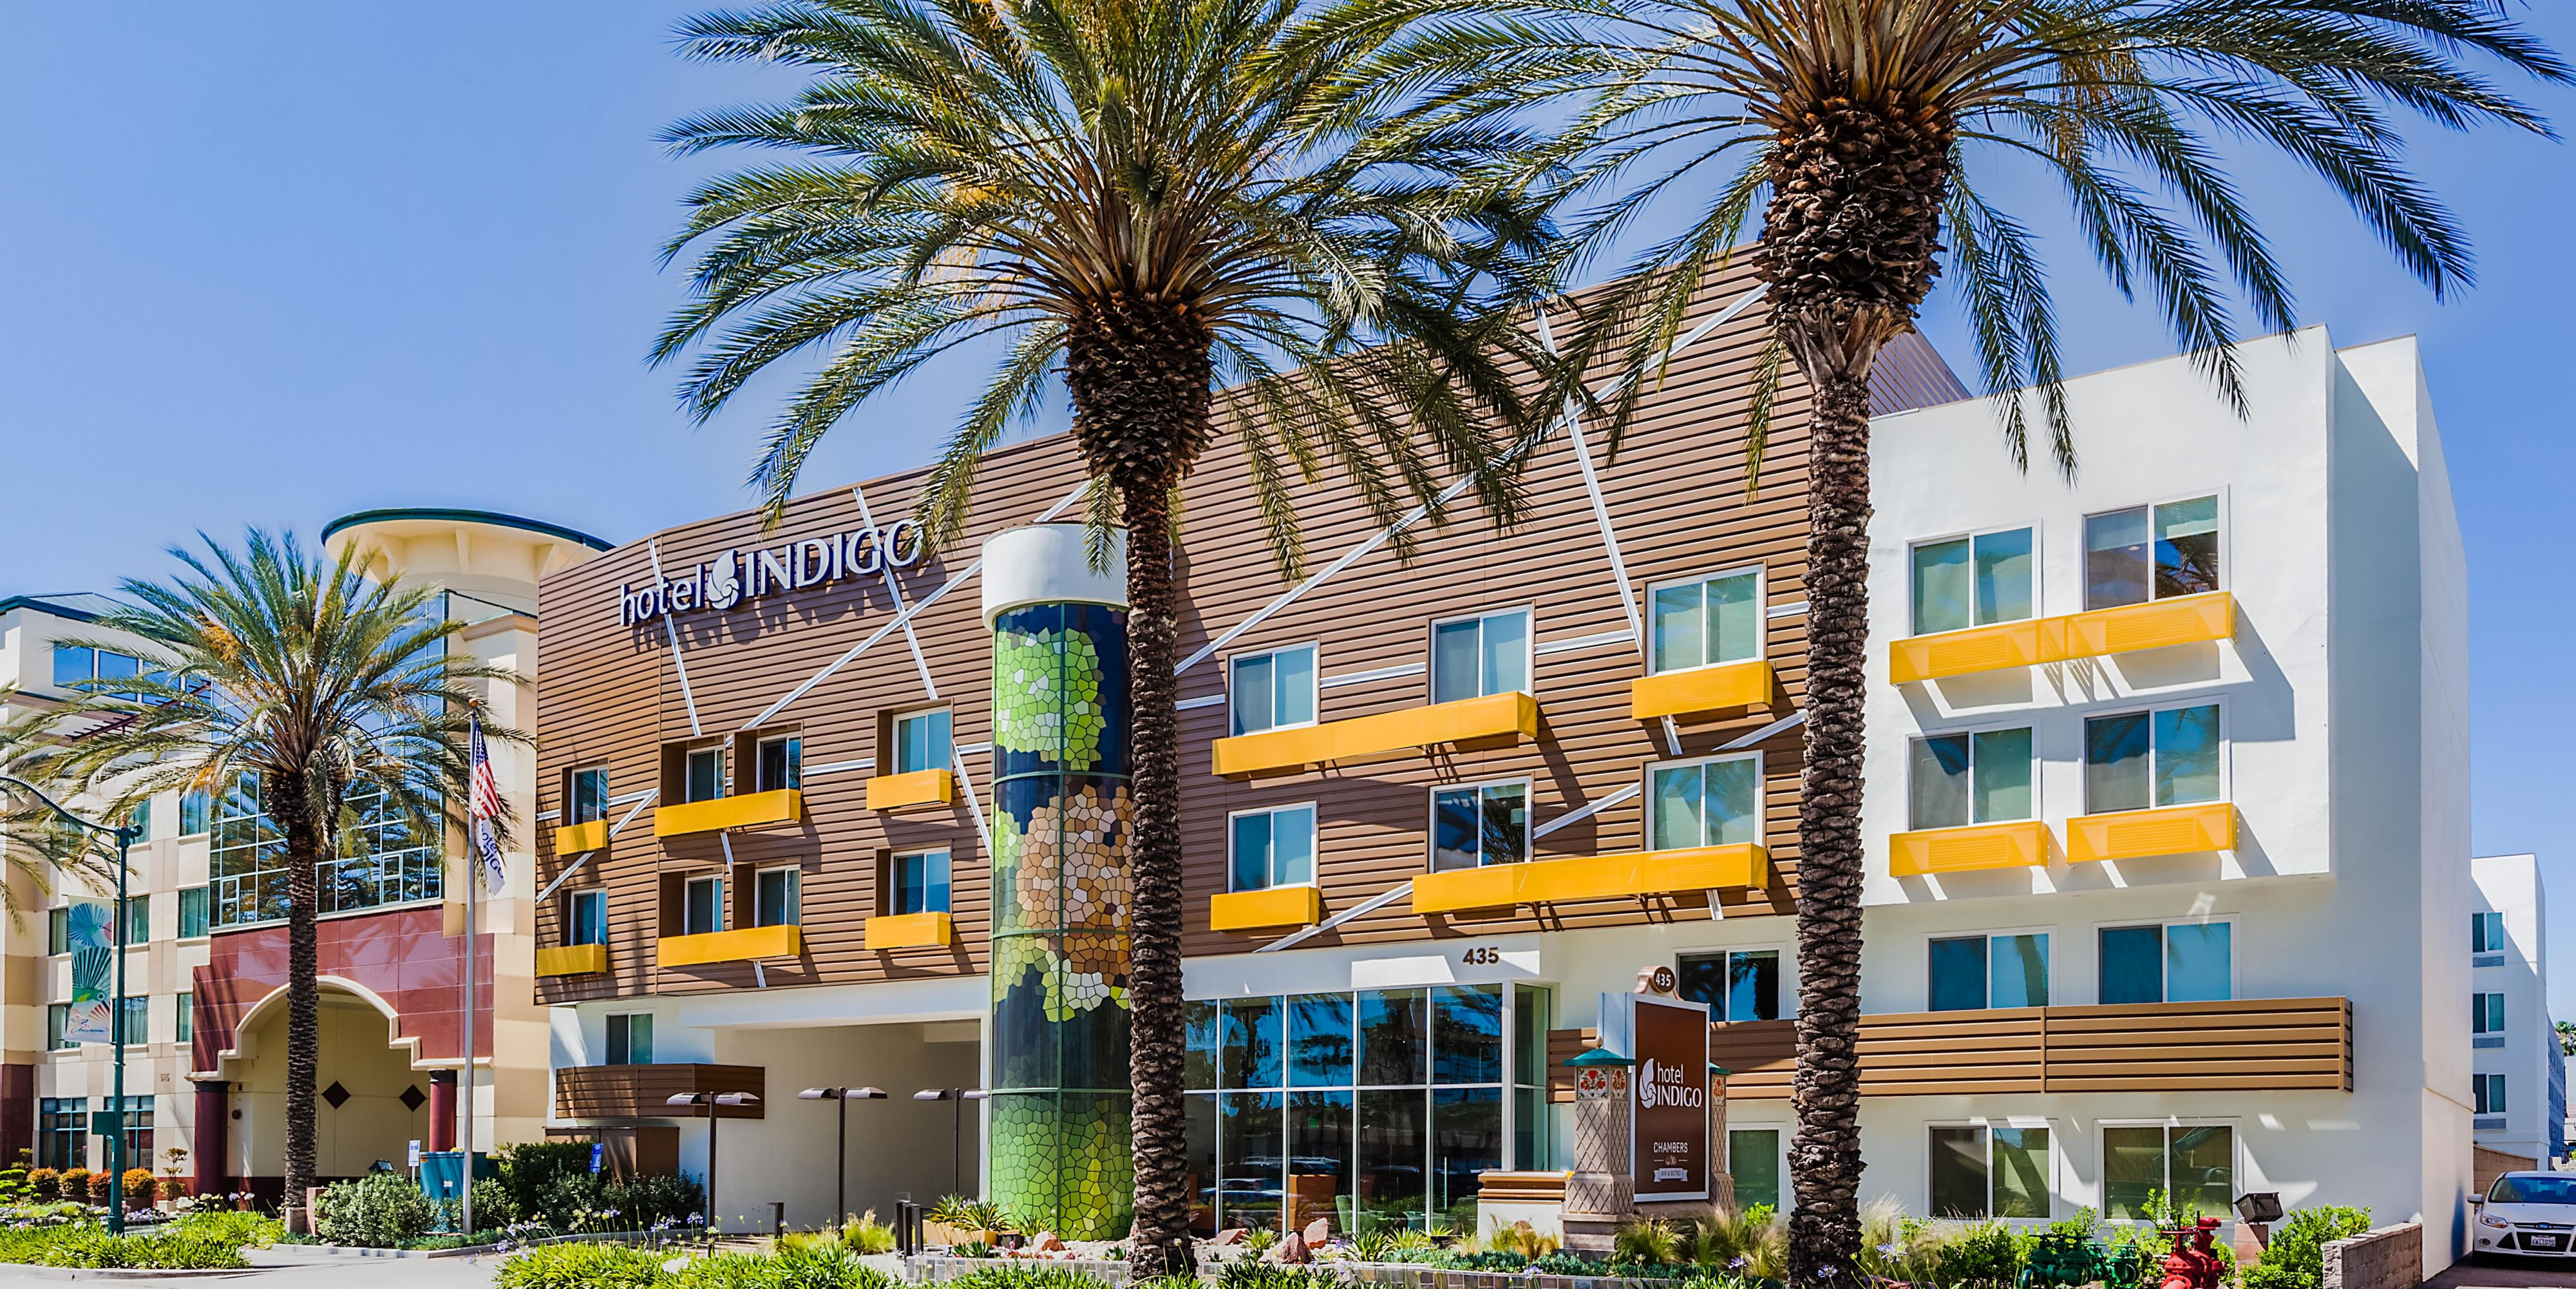 There are more than 60 Disneyland area hotels to choose from. Get details, pricing and exclusive offers on your next Disneyland area hotel stay here.